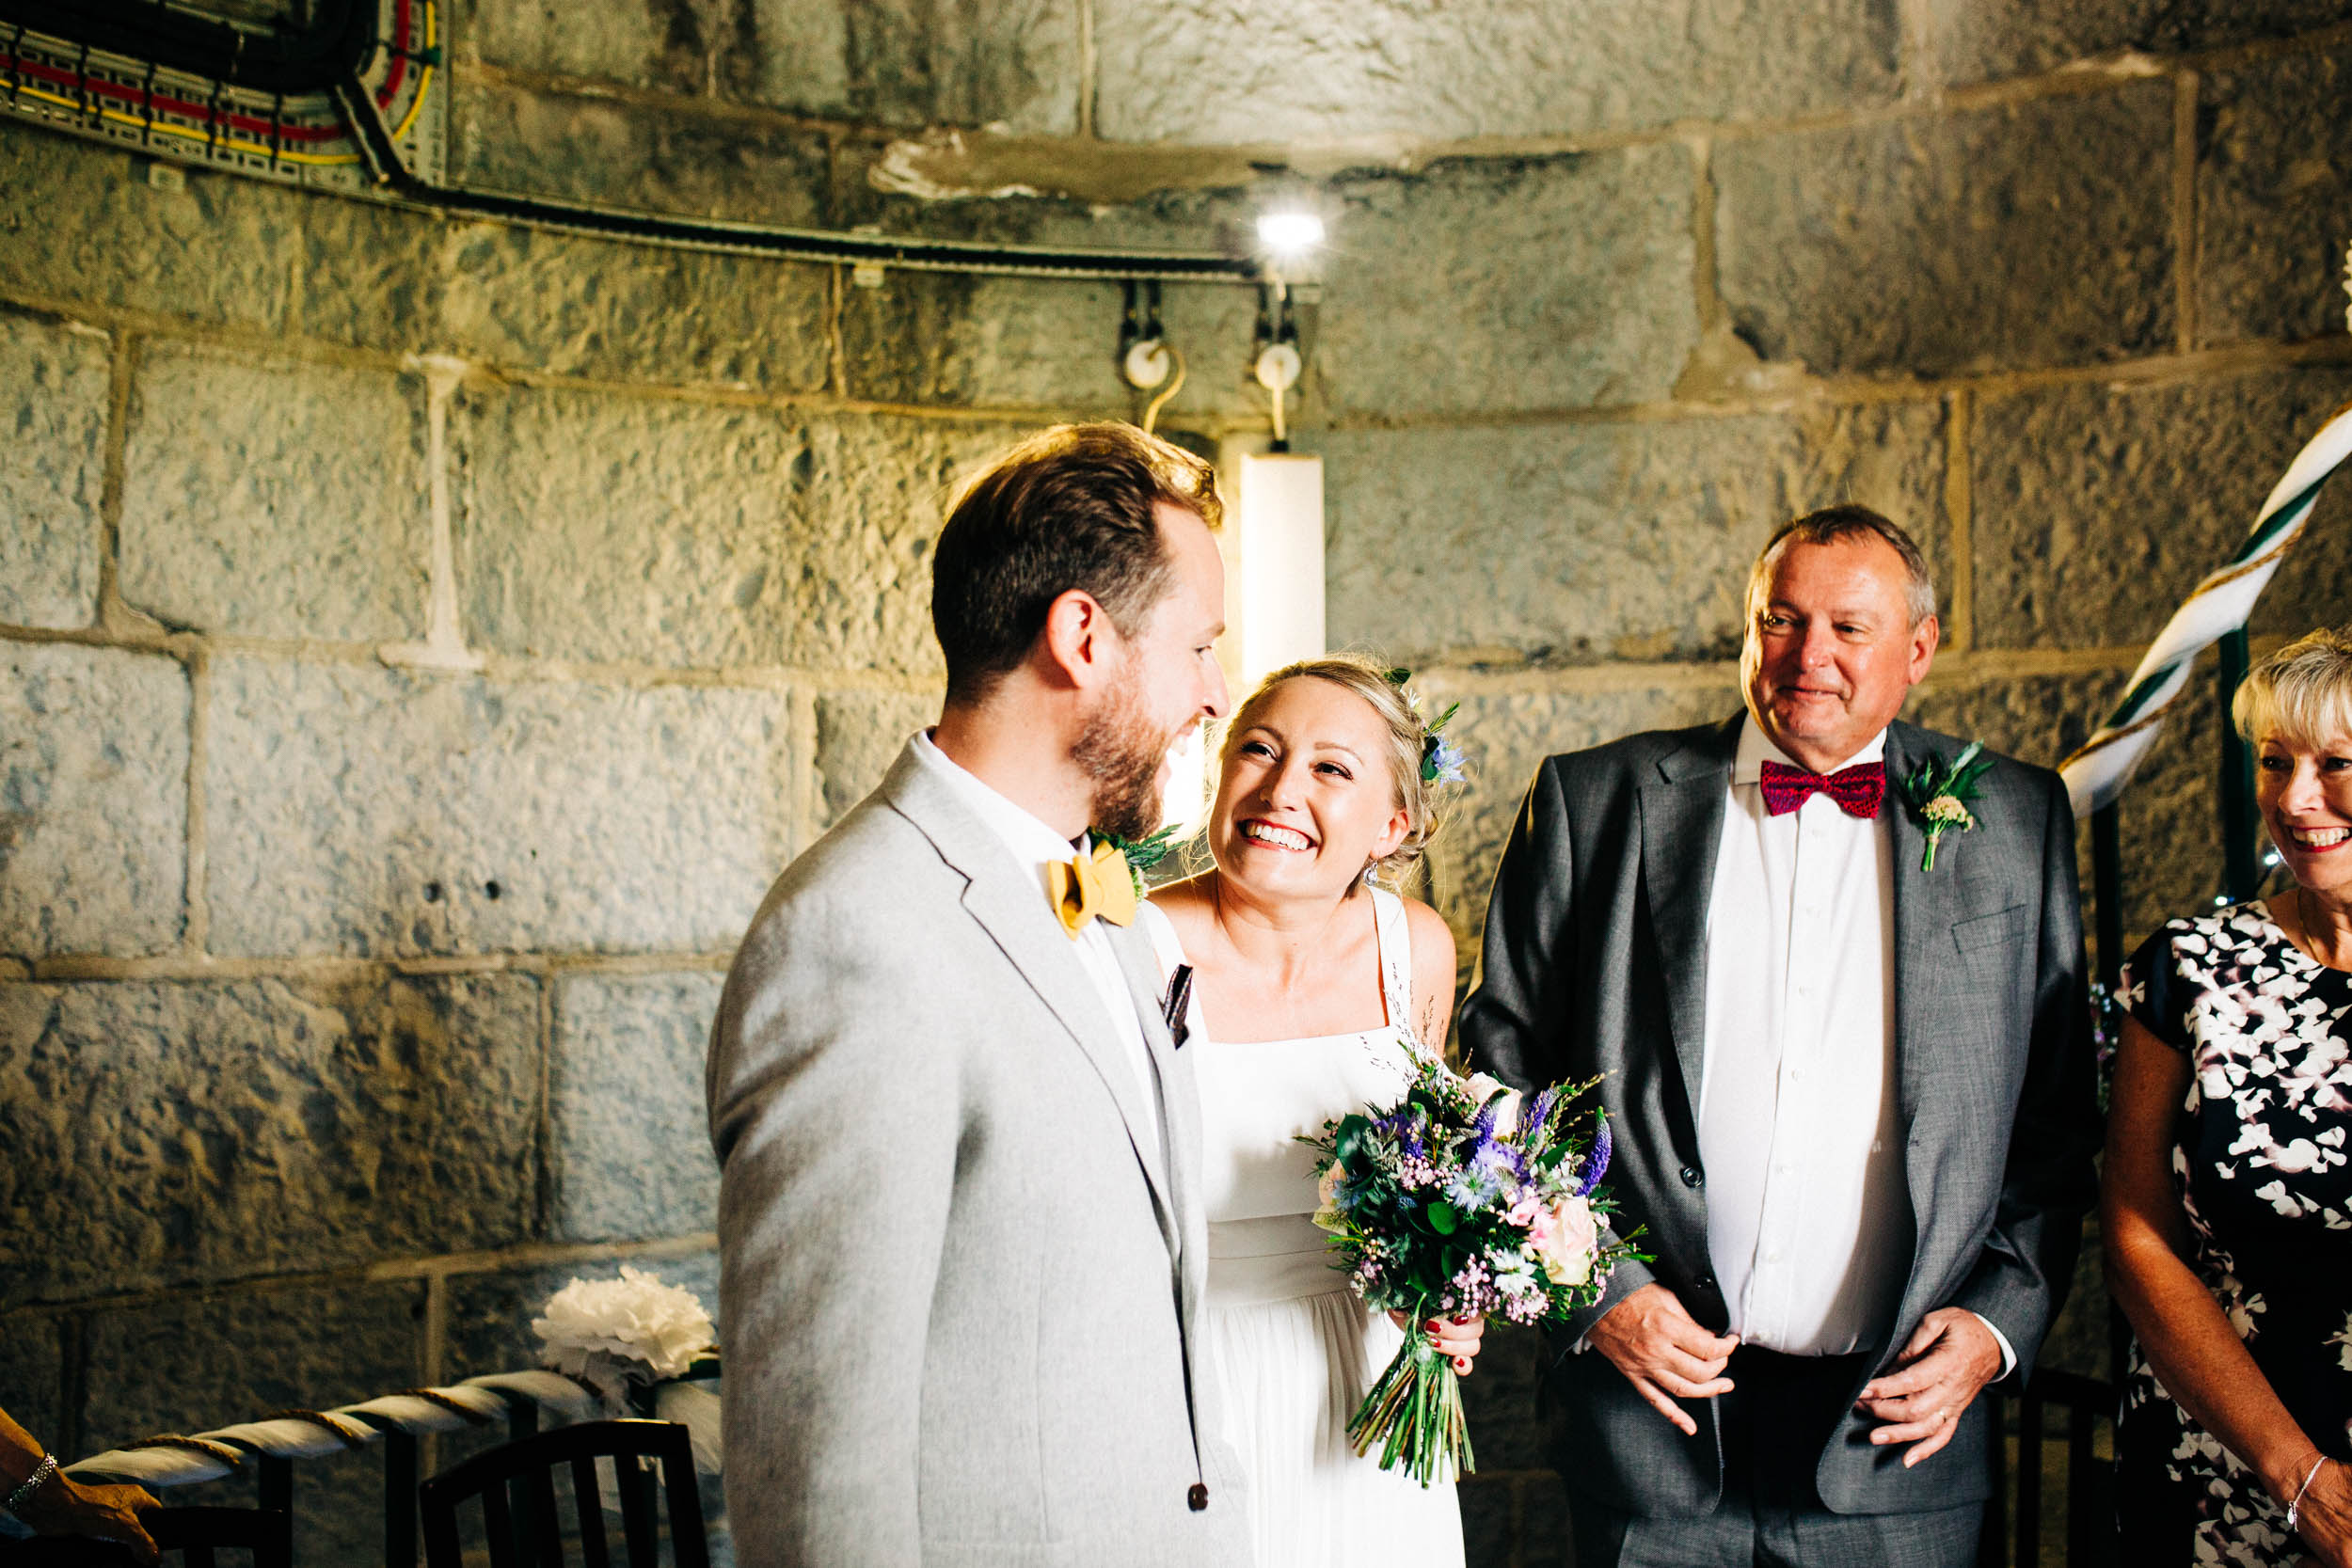 Alex_Sedgmond_Photography-MonkNashLighthouse-WeddingPhotography-Penny&Mike-62.jpg